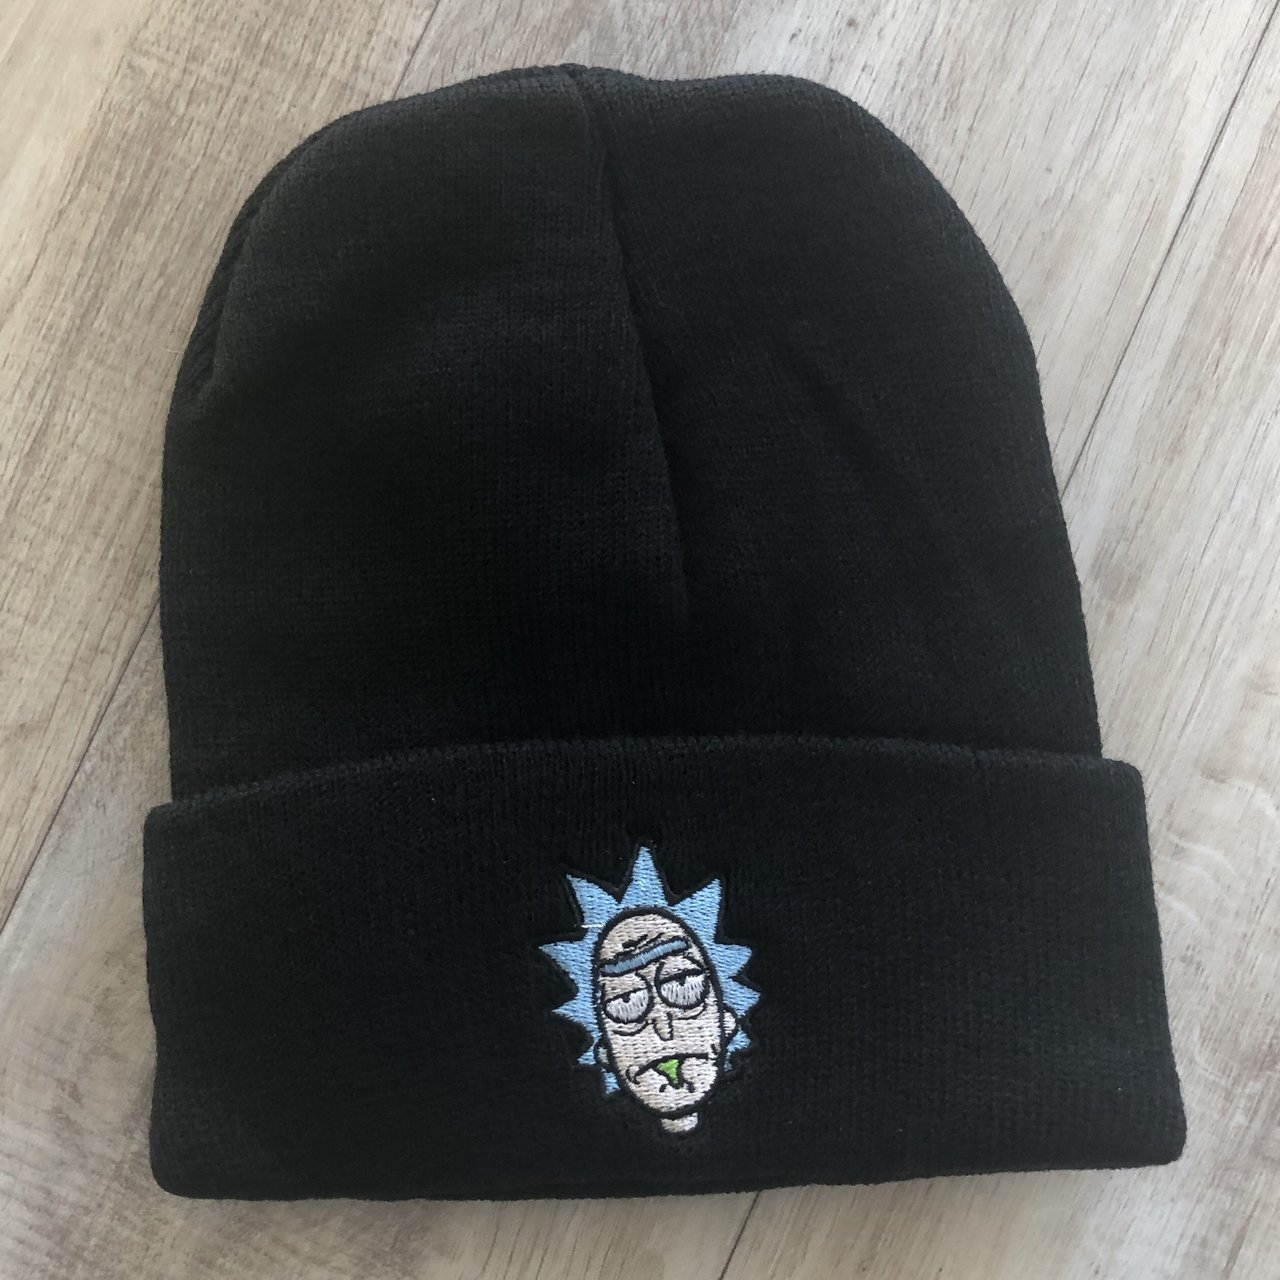 abe9cb72aed Rick and Morty embroidered beanie.  11. DRAVUS BEANIE HARDLY WORN